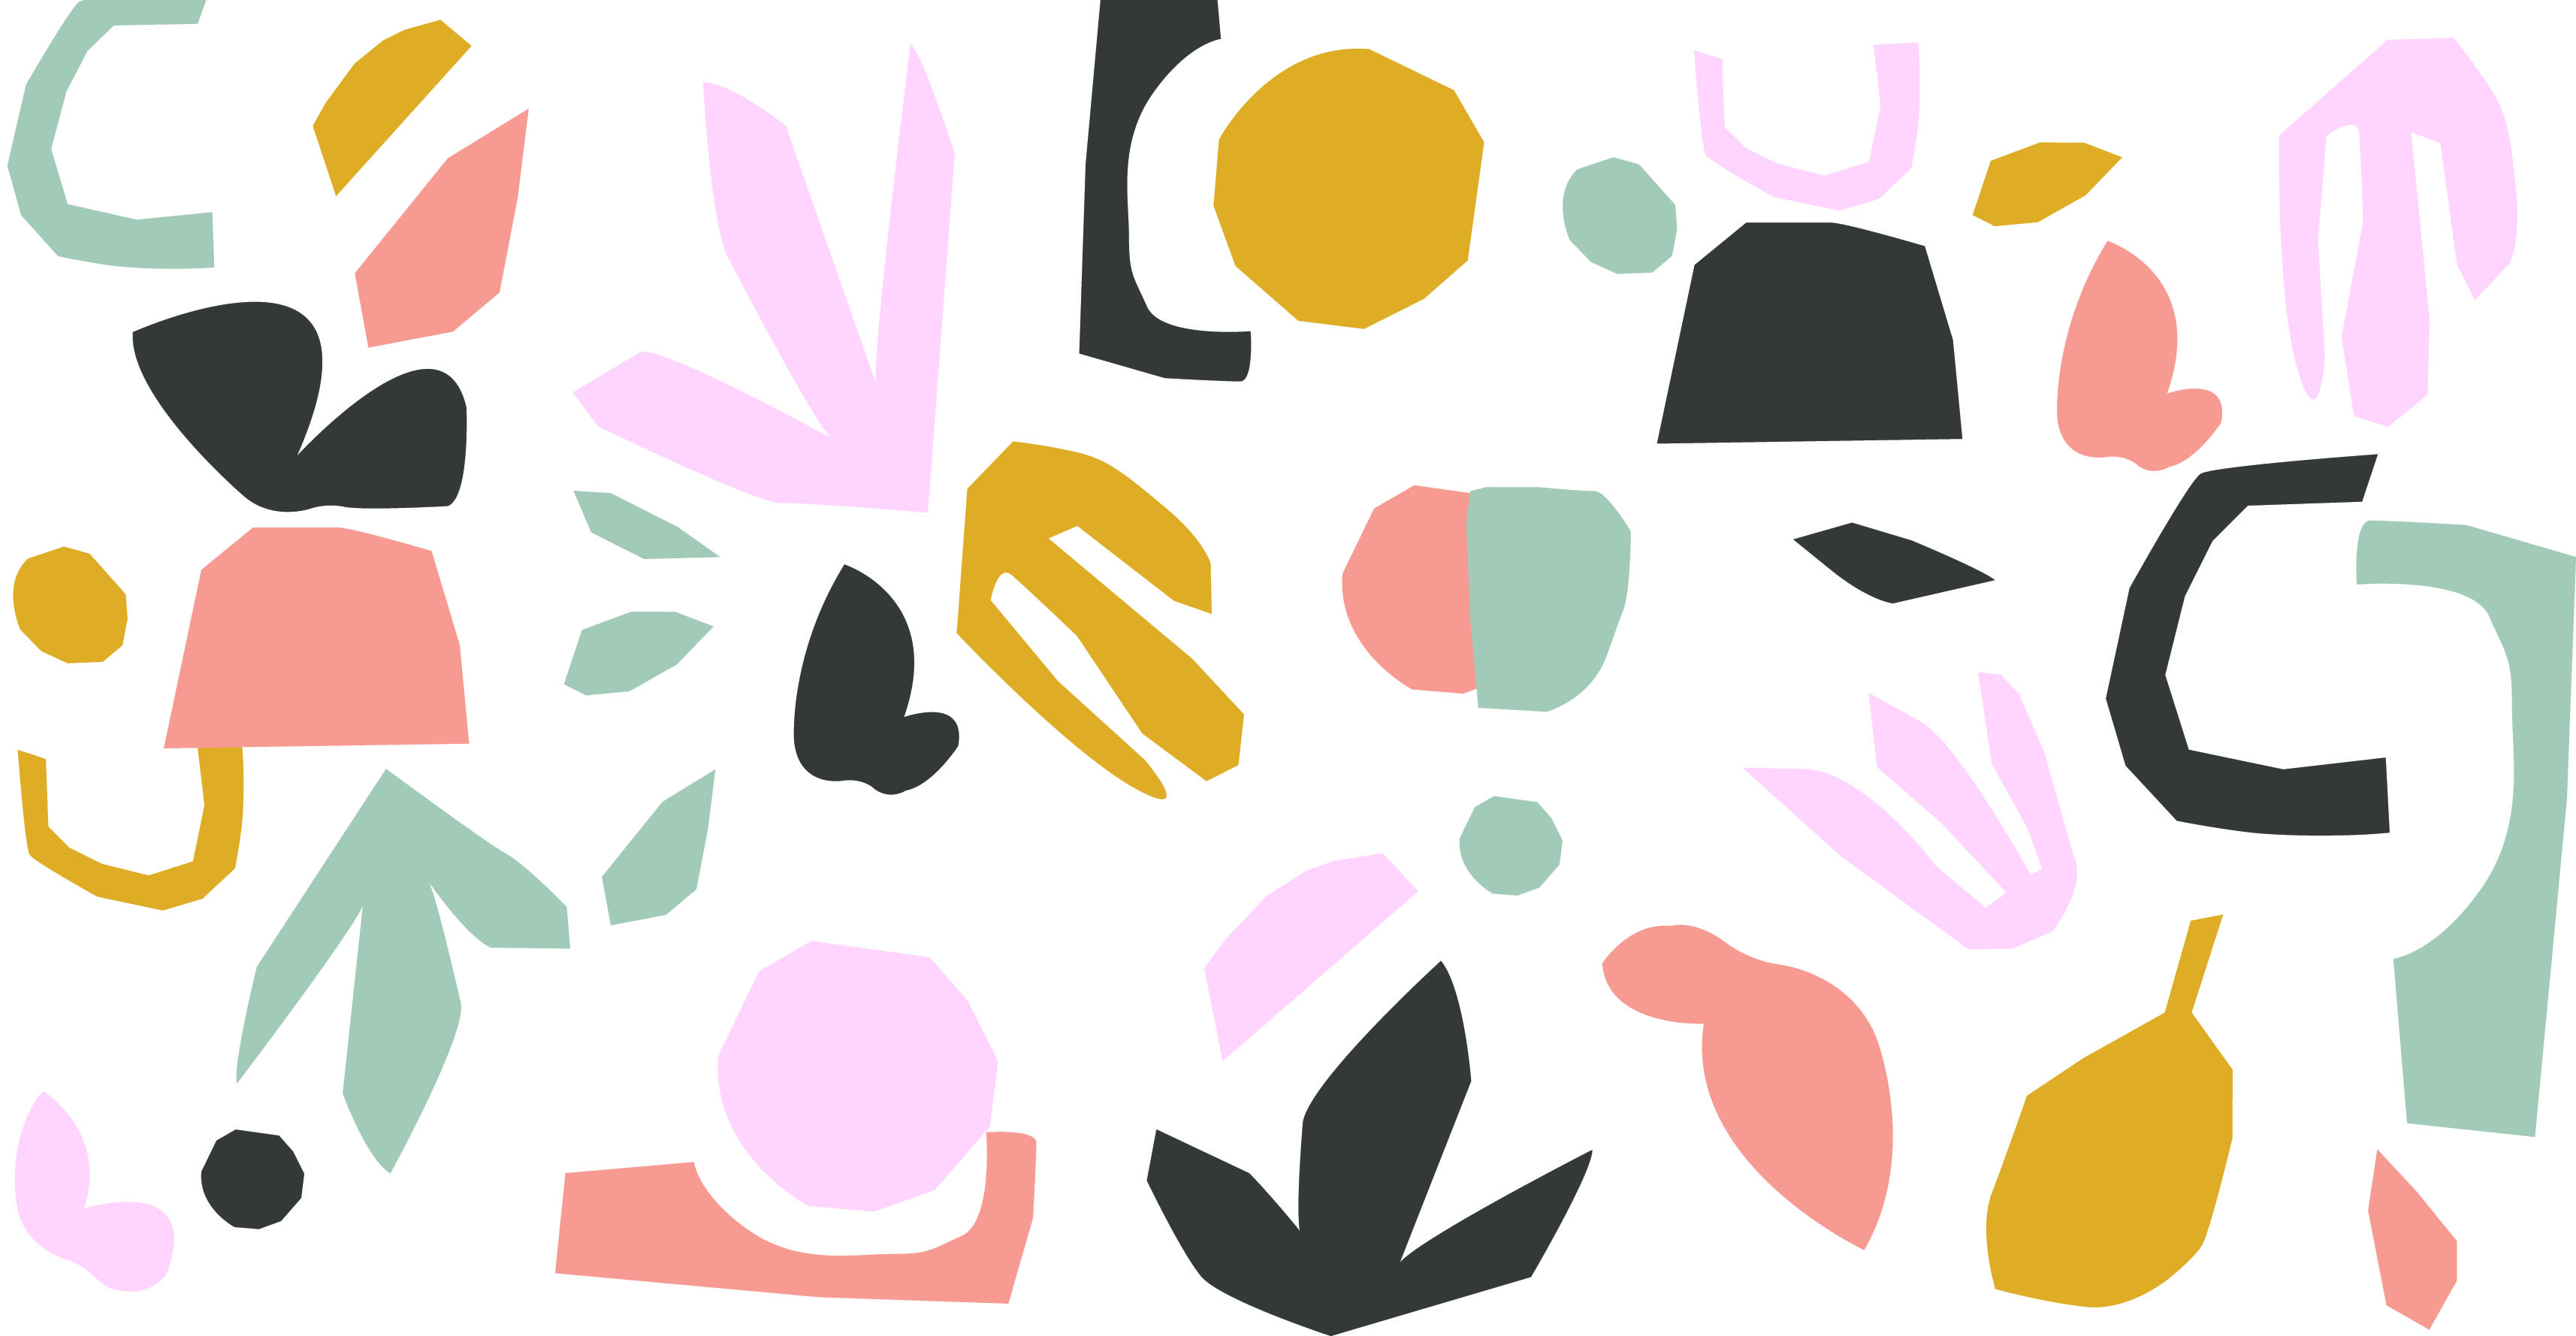 artist + surface pattern designer -  playing with shapes and colors.